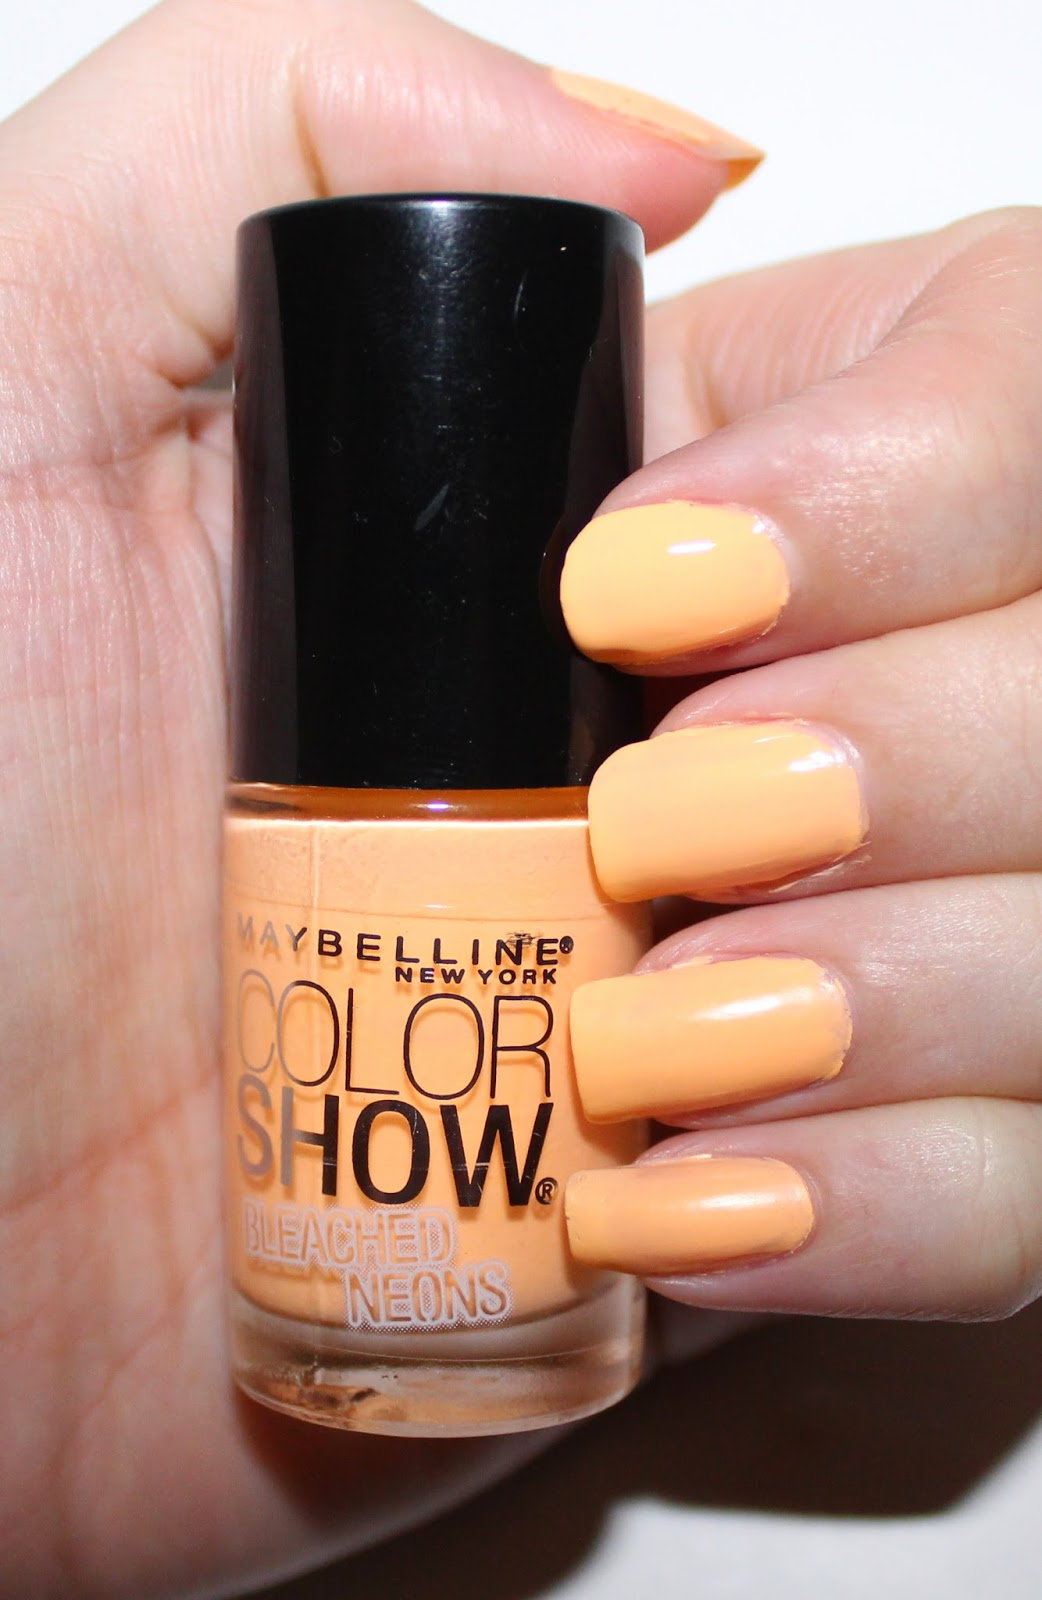 Maybelline Bleached Neons Bleached in Peach Swatch